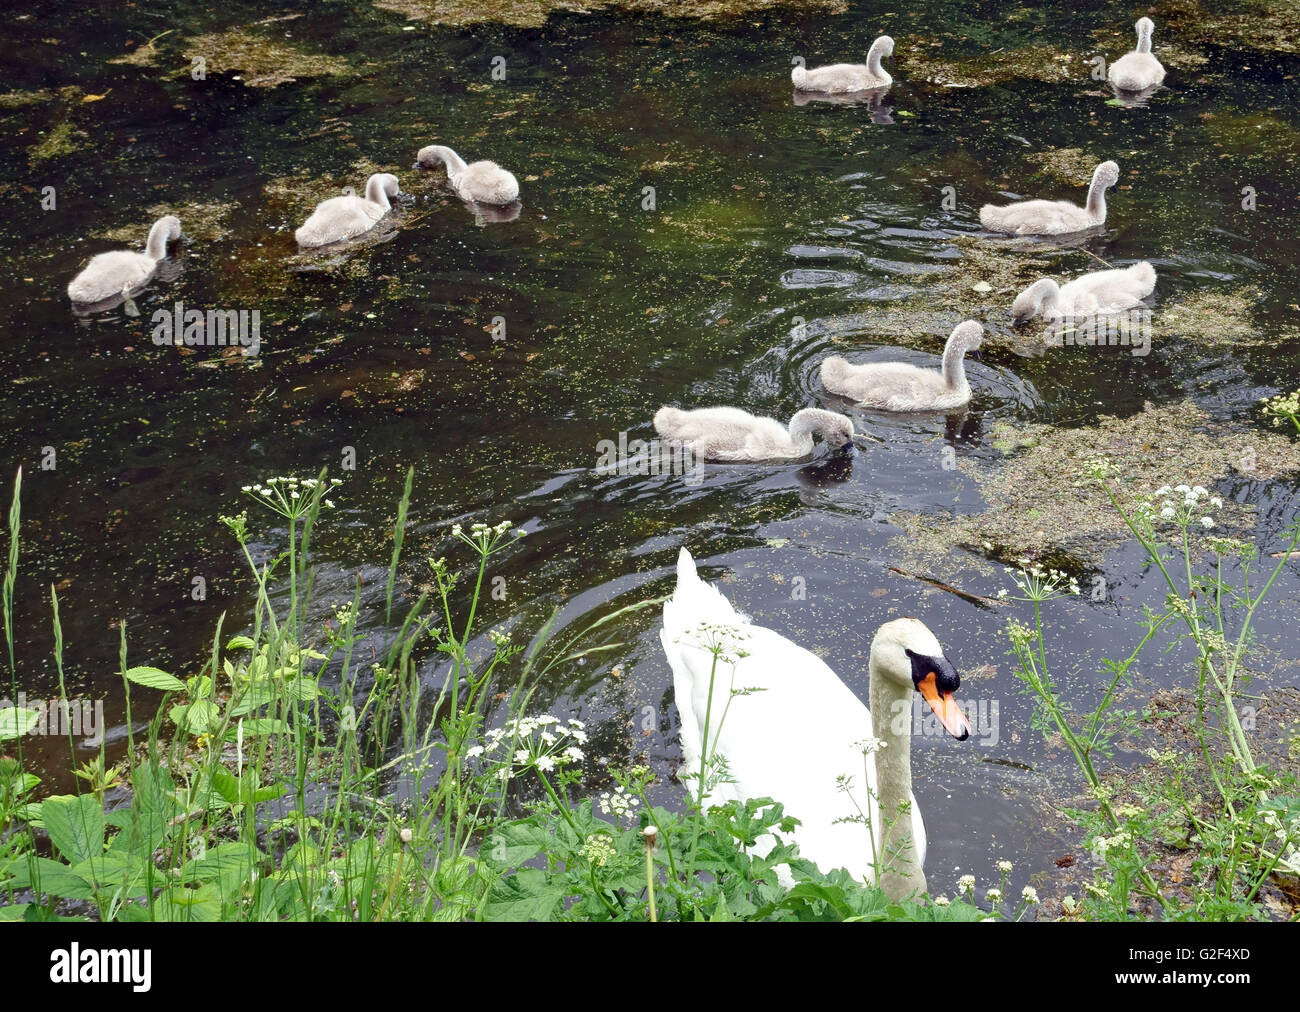 Mute swan with brood of cygnets on Grand Western Canal in Devon, England - Stock Image